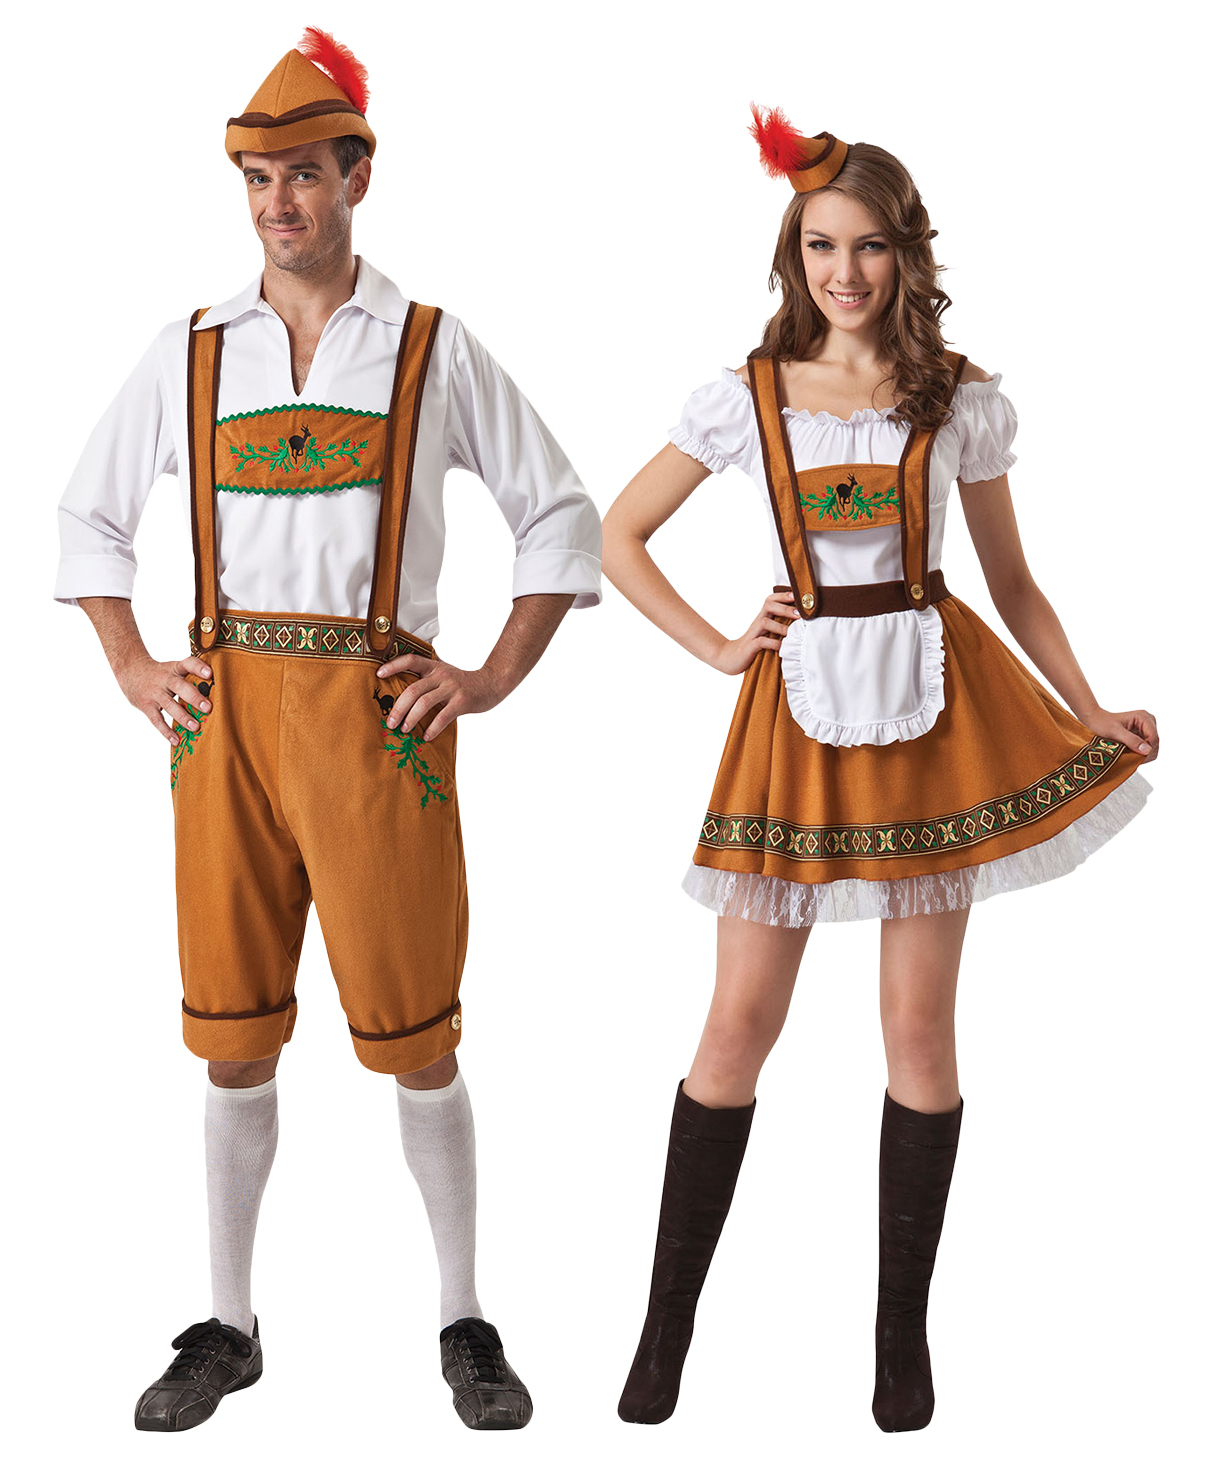 Choose from thousands of fancy dress costumes from the UK's favourite online fancy dress shop! Next day delivery available for all costumes and accessories! We use cookies to improve your experience. Find out more. Accept. Next Day Delivery Order by 4pm Help Sign in Menu.